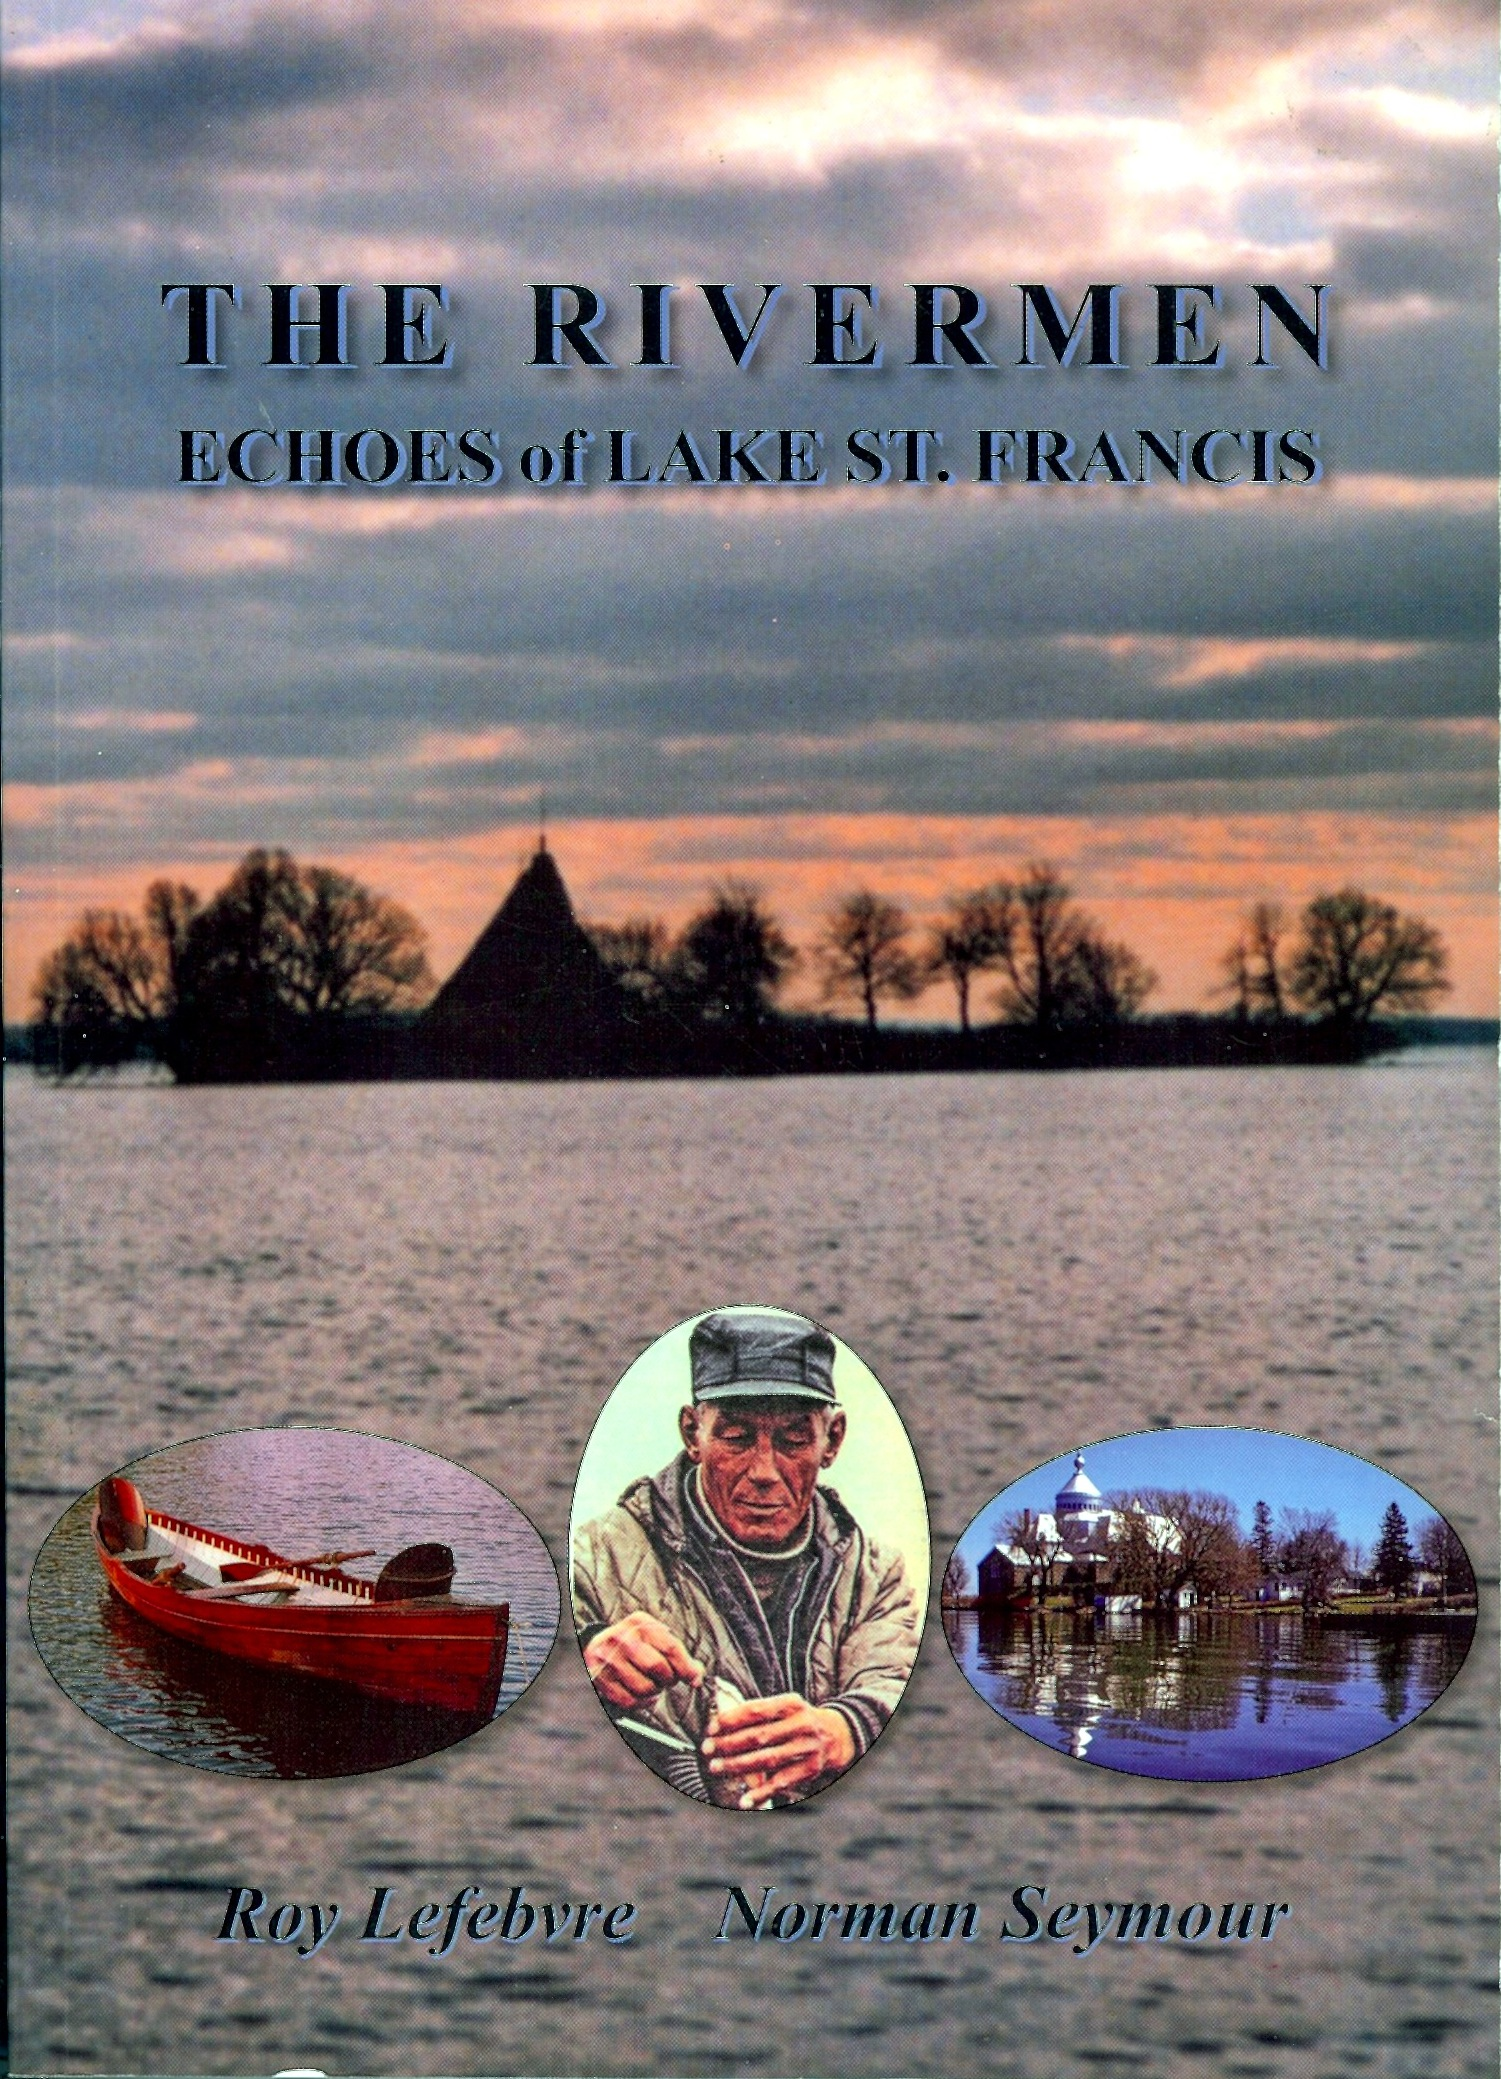 The Rivermen -- Echoes of Lake St Francis